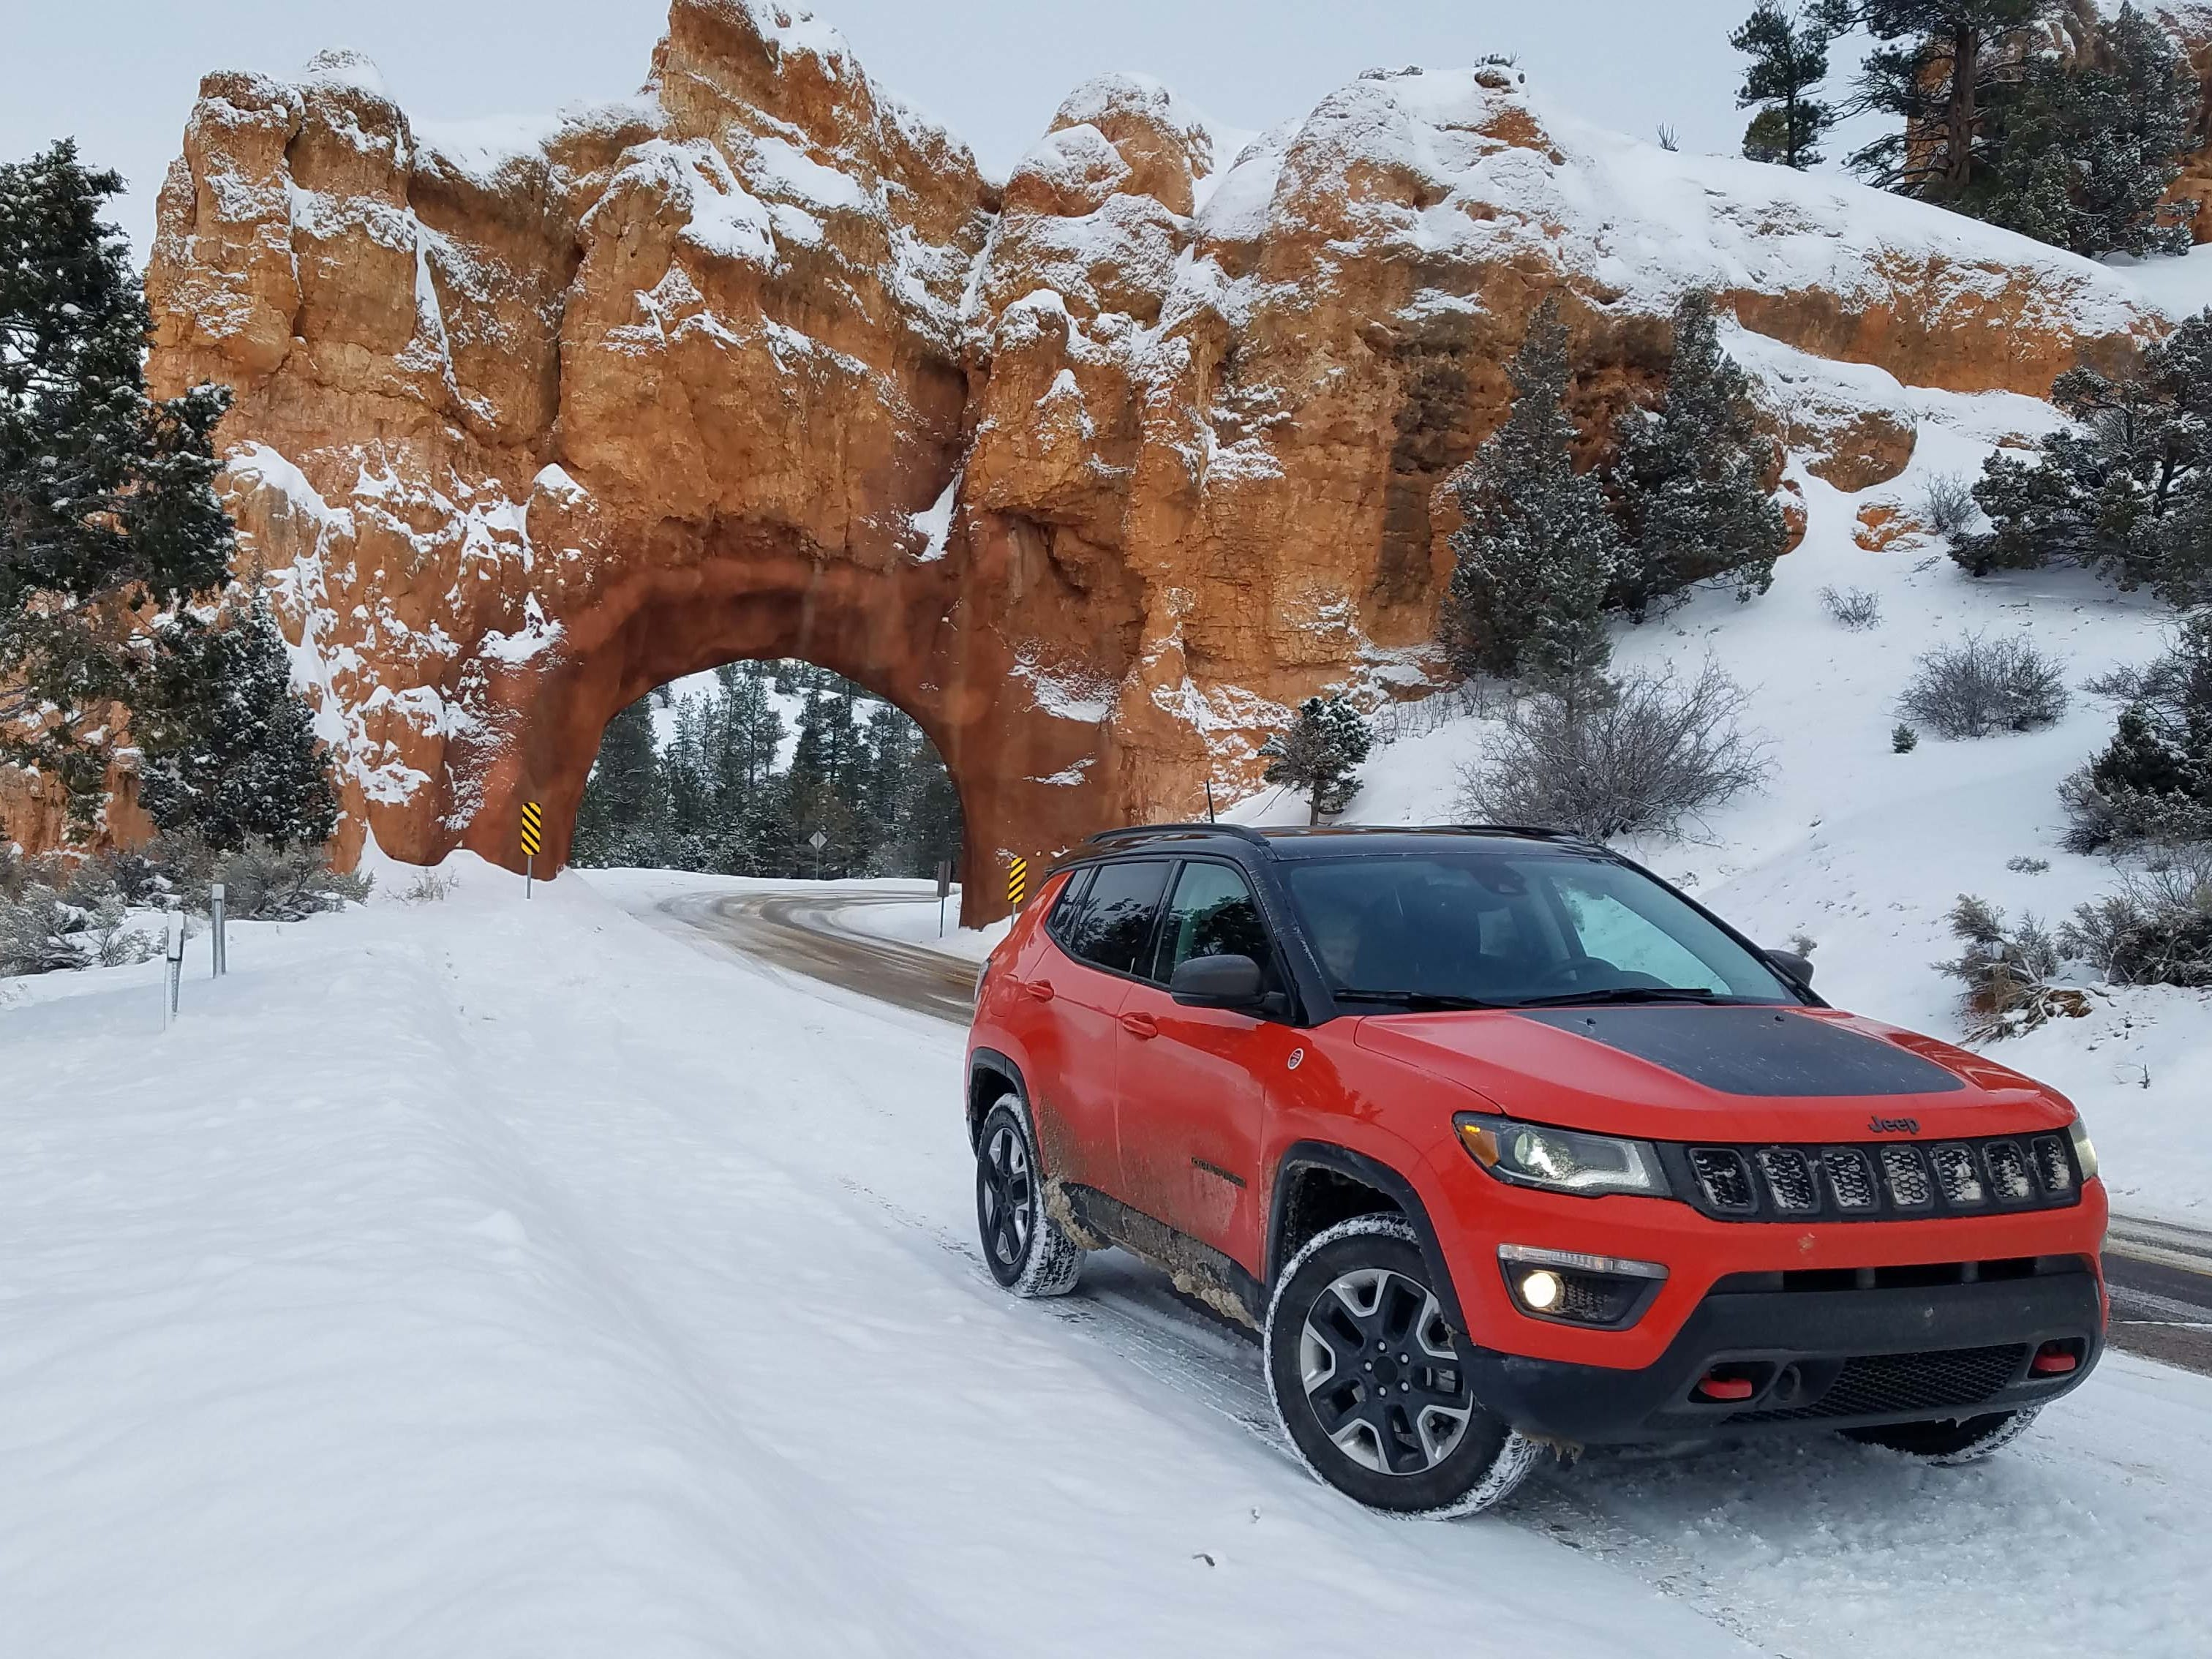 Miles from anywhere, the Jeep Compass Trailhawk soldiers through Bryce Canyon, Utah. The Compass was introduced in 2017 and slots between the Renegade and Cherokee in Jeep lineup.